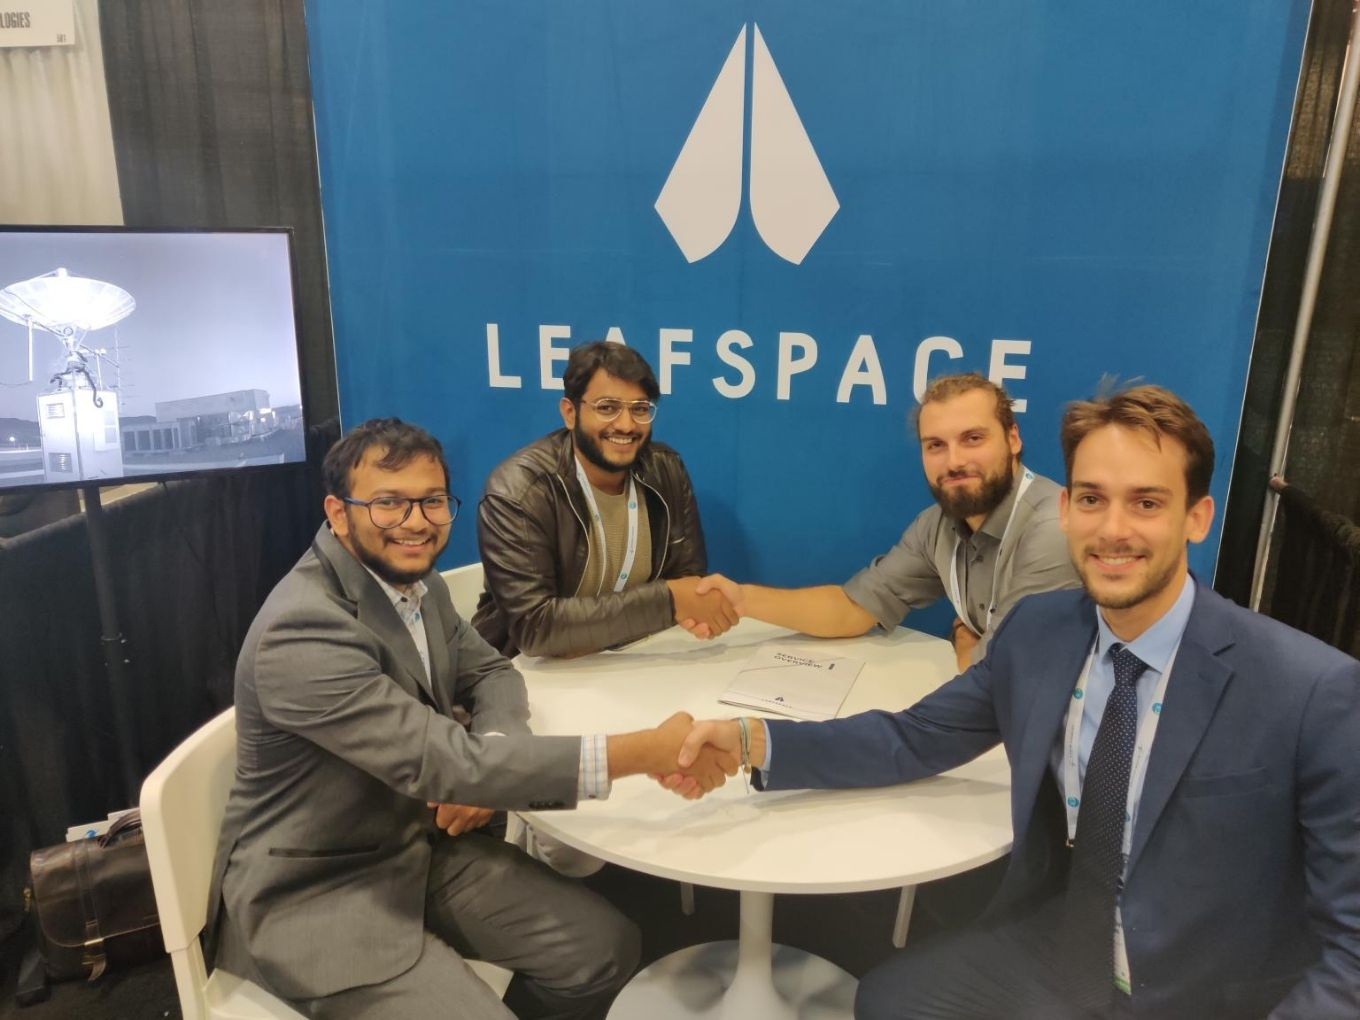 Bengaluru's Pixxel Ties Up With Leaf Space For Its Imaging Satellite